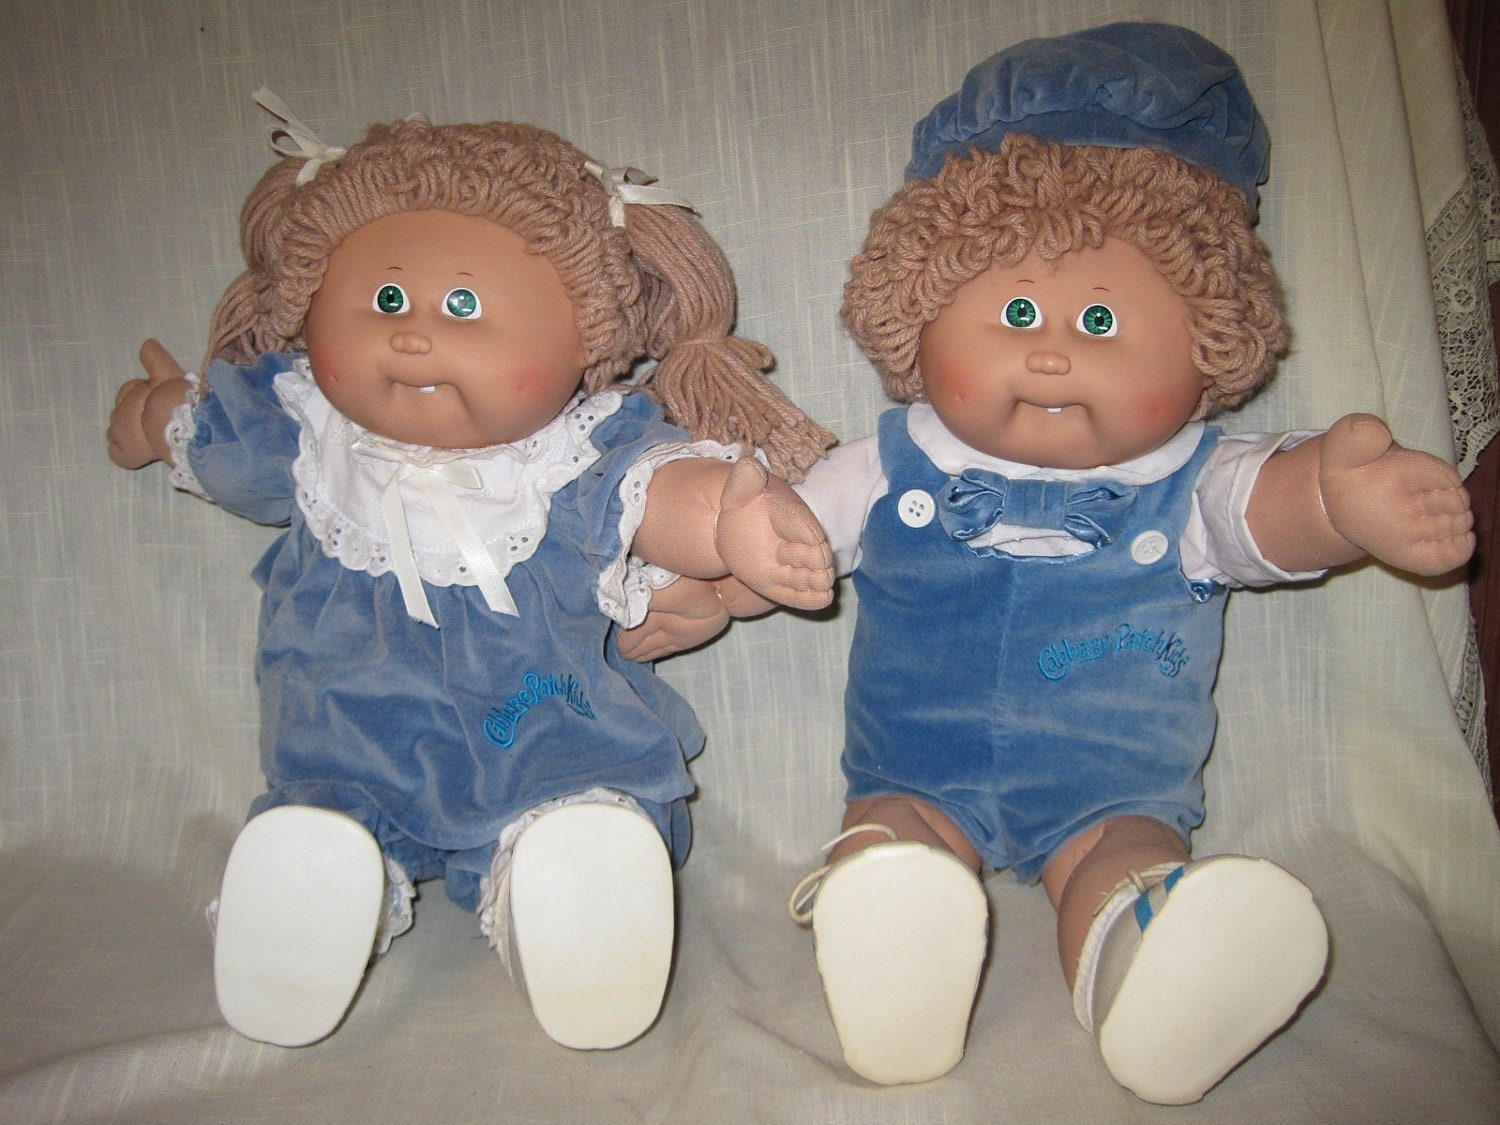 Cpk Vintage 1980s Coleco Cabbage Patch Twins One Boy By